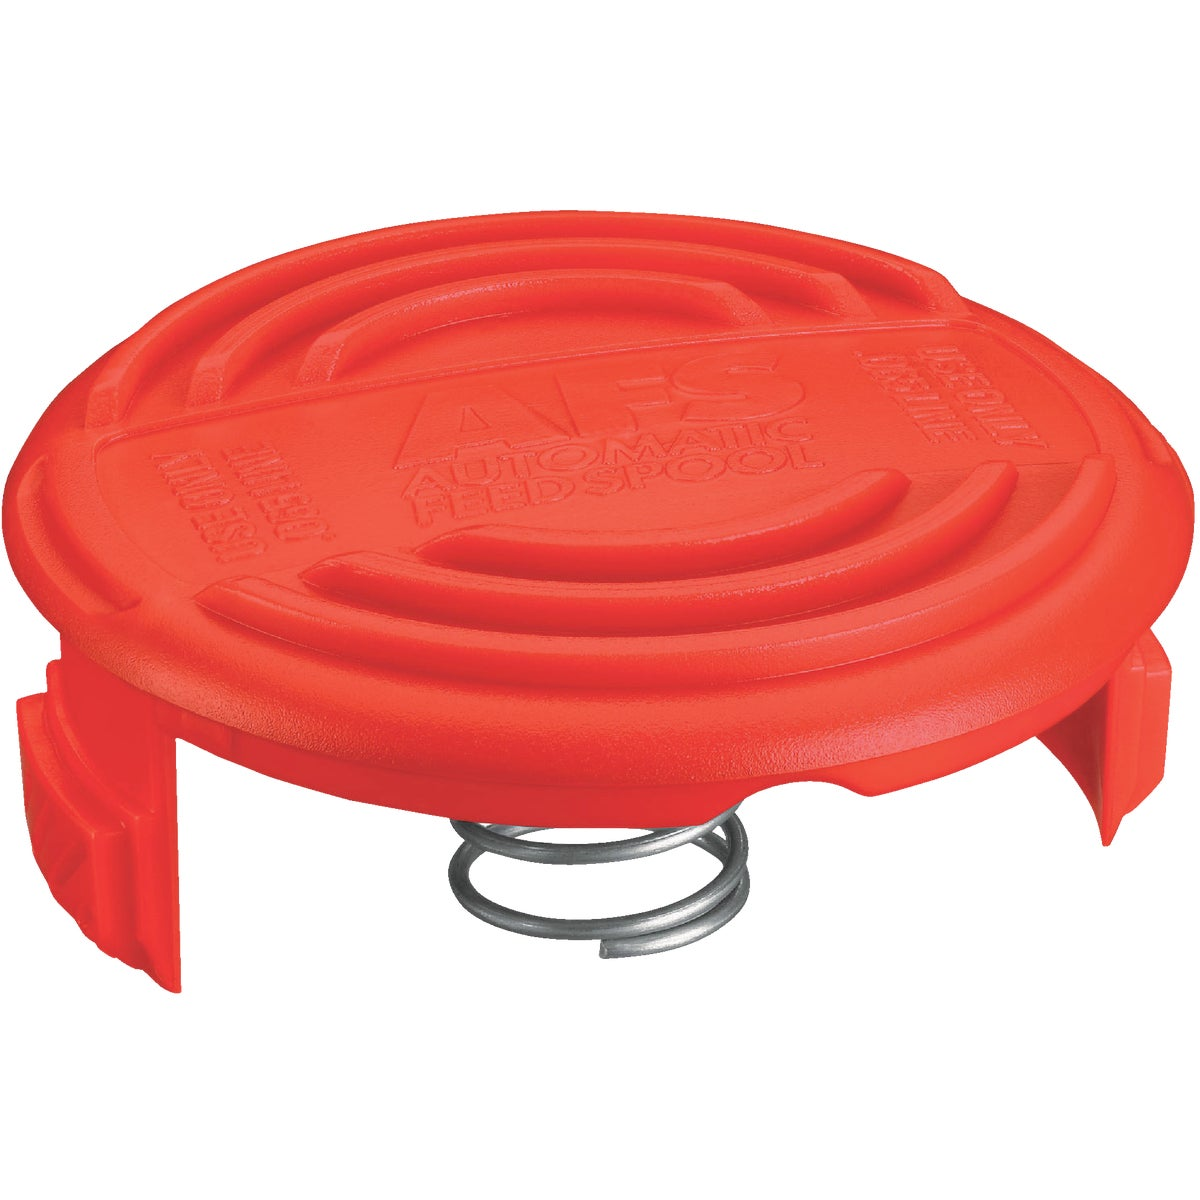 REPL SPRING/SPOOL CAP - RC-100-P by Black & Decker